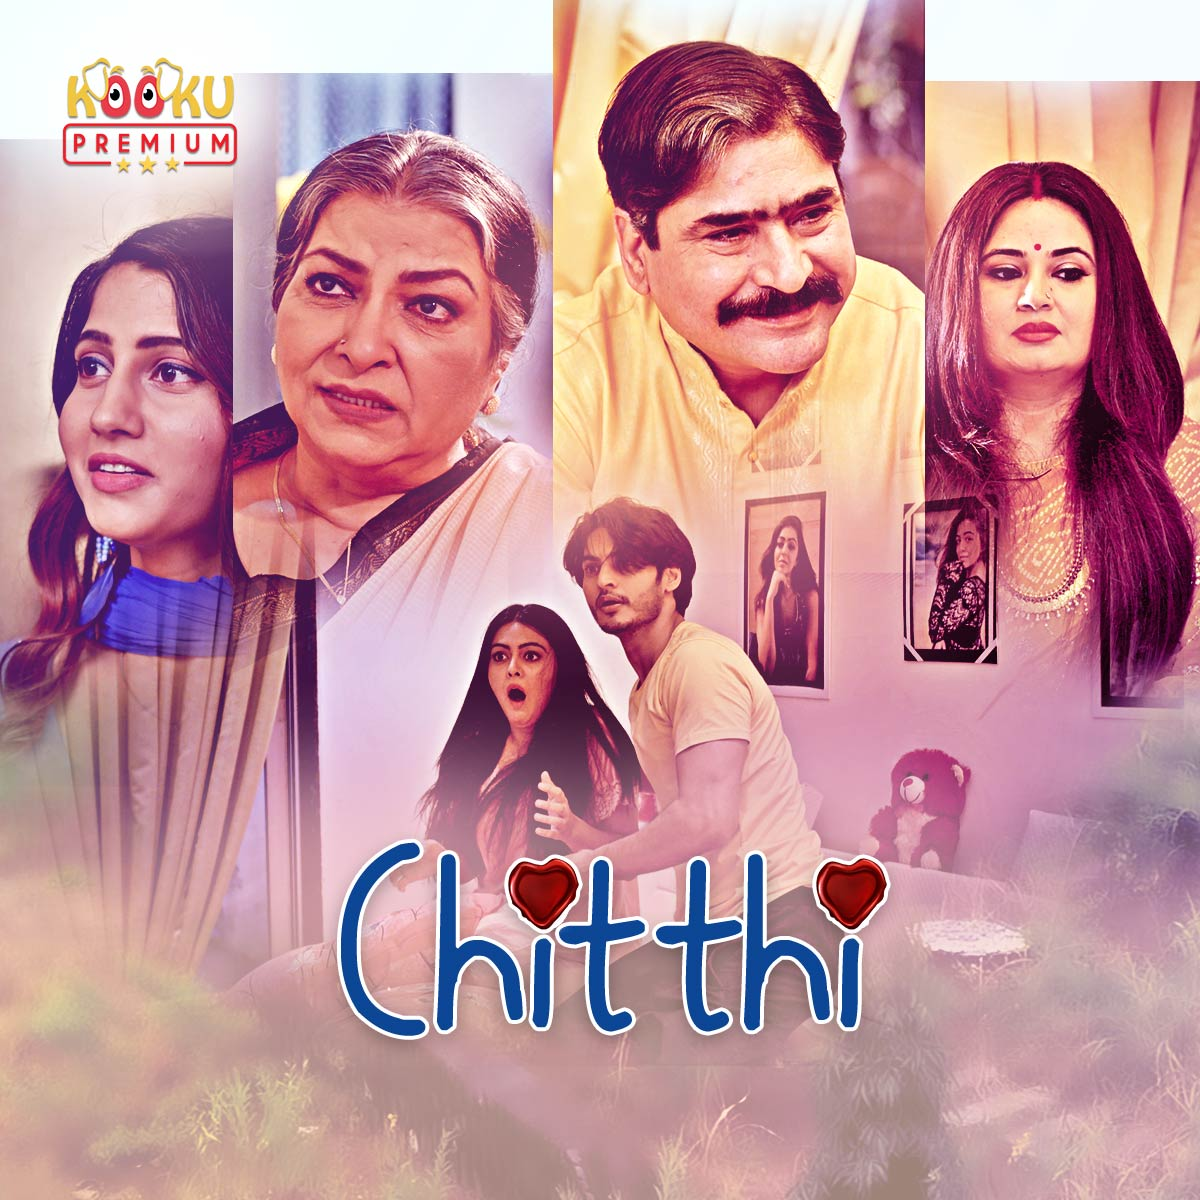 Chitthi 2020 S01 Hindi Kooku App Web Series Official Trailer 1080p HDRip Free Download